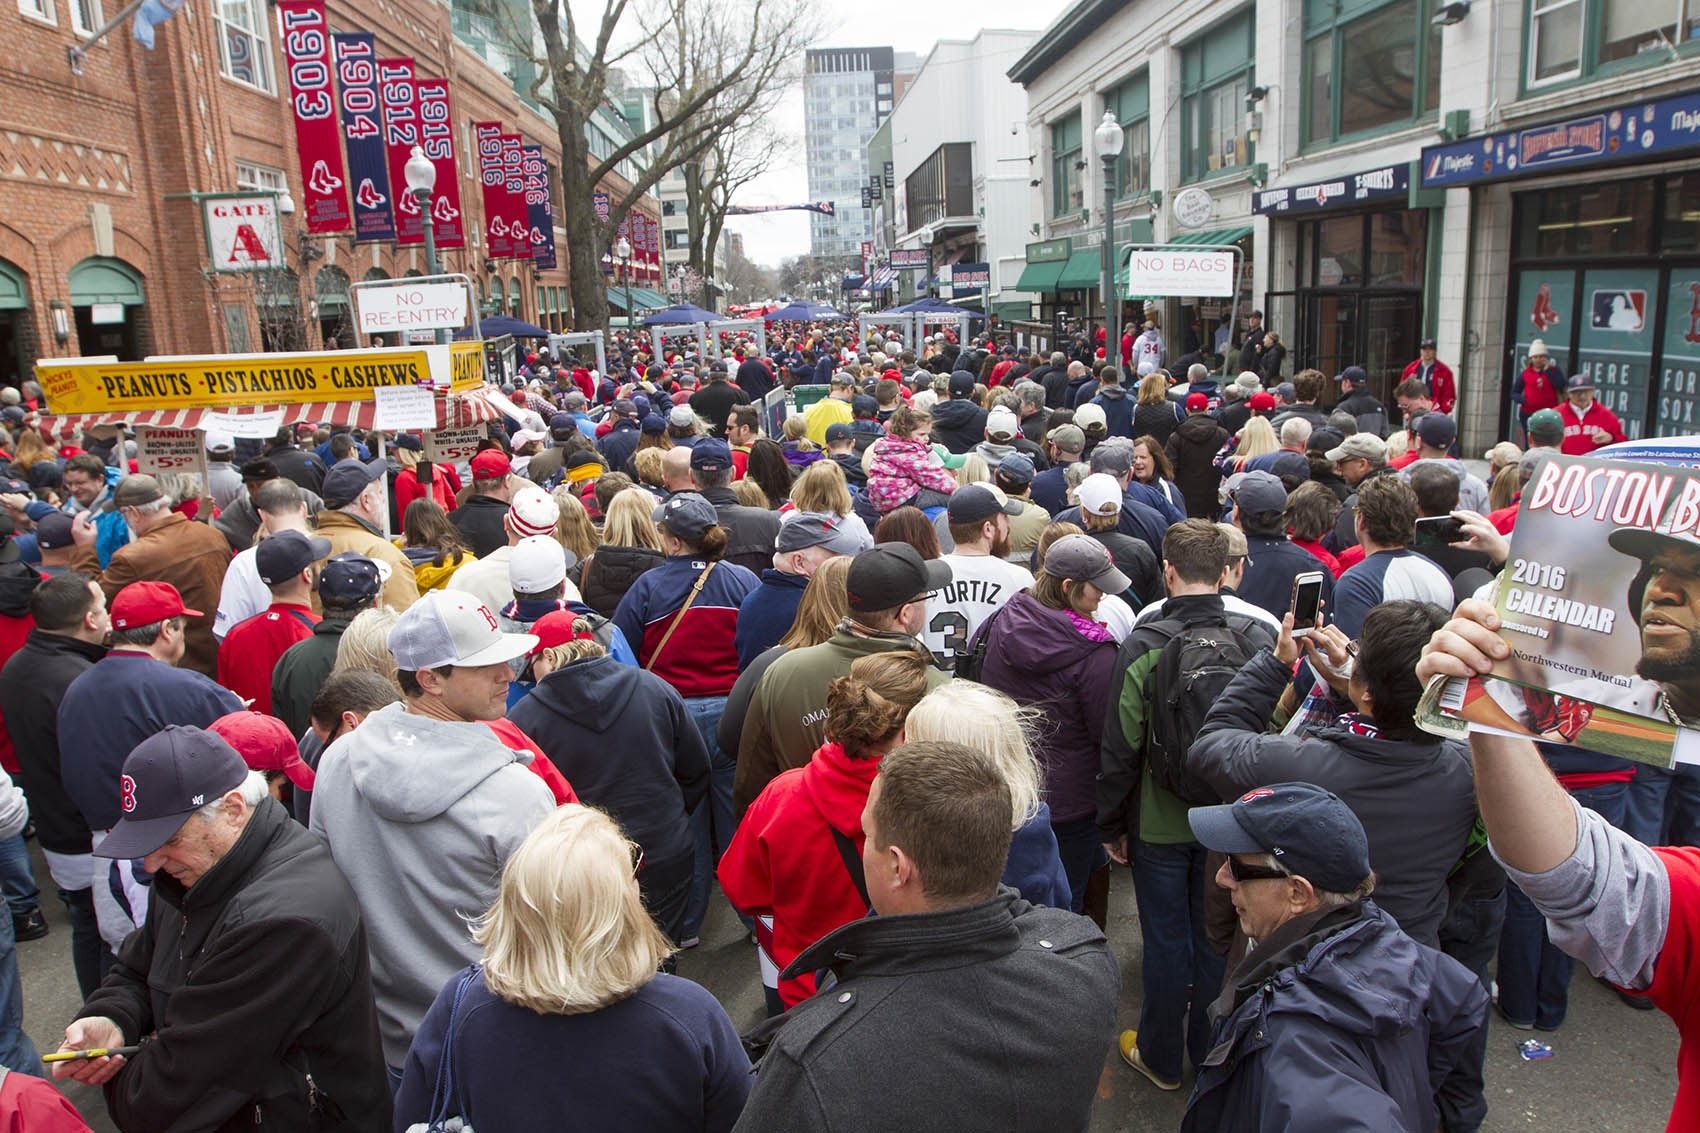 Fans wait in security lines on Yawkey Way to get into Fenway Park on Red Sox 2016 Opening Day. (Joe Difazio for WBUR)